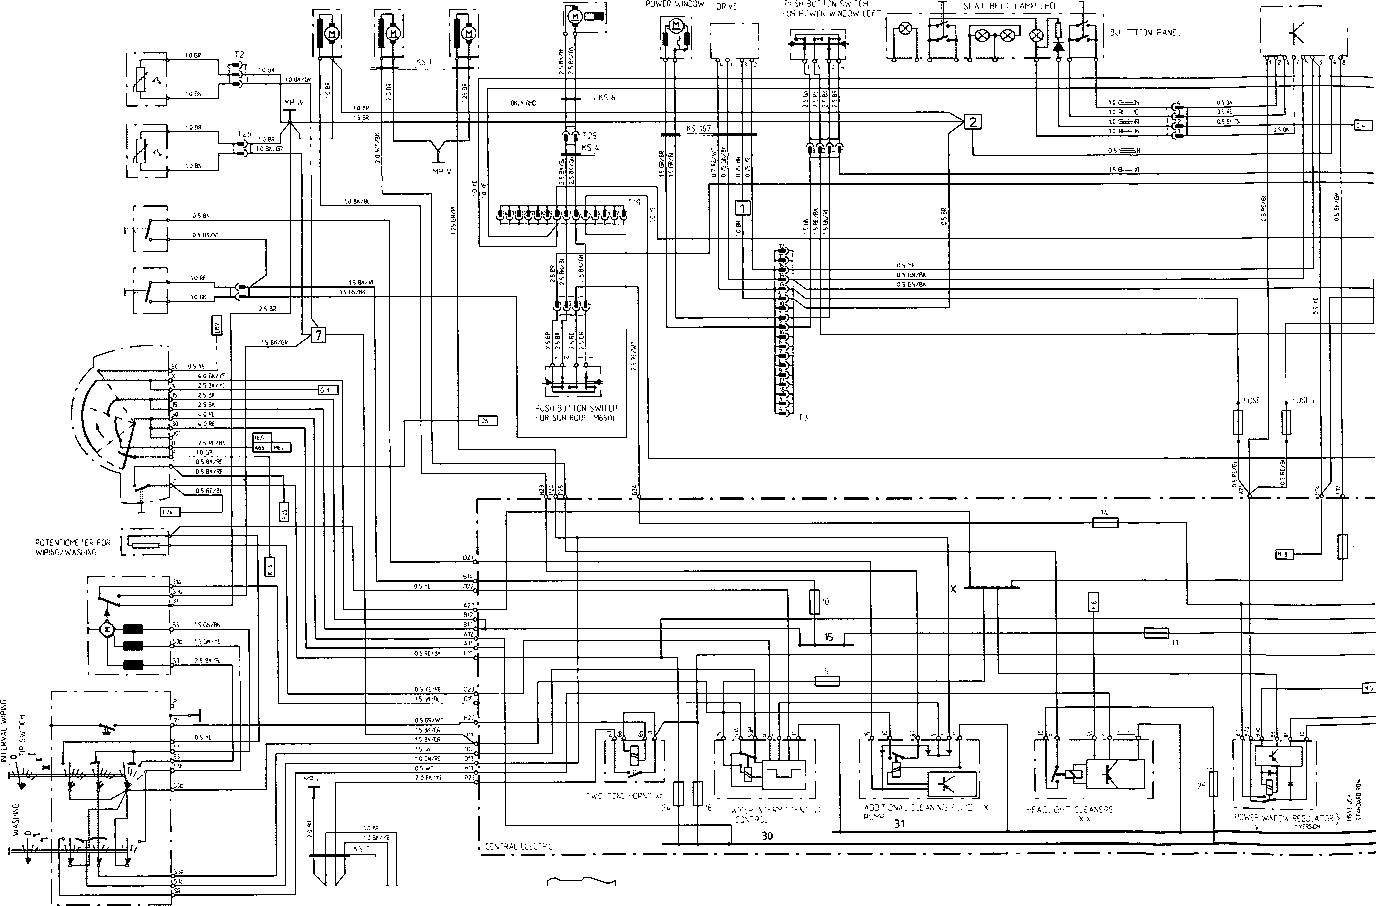 1980 Porsche 928 Wiring Diagram on Porsche 912 Wiring Diagram